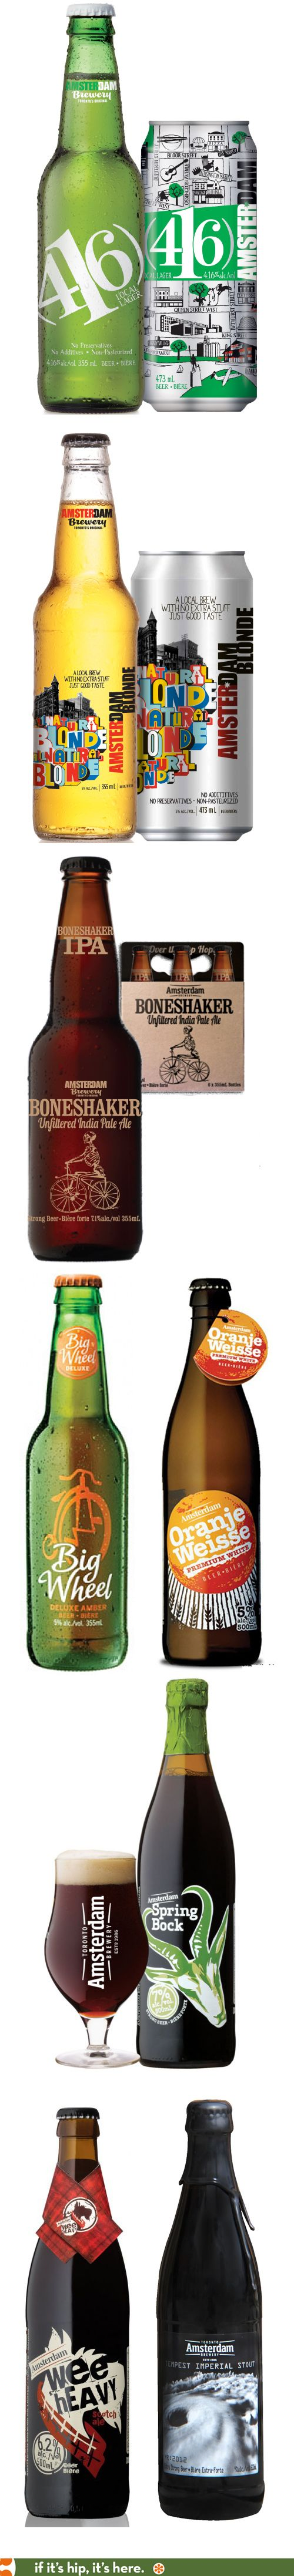 Amsterdam Brewery's best bottle and can designs PD